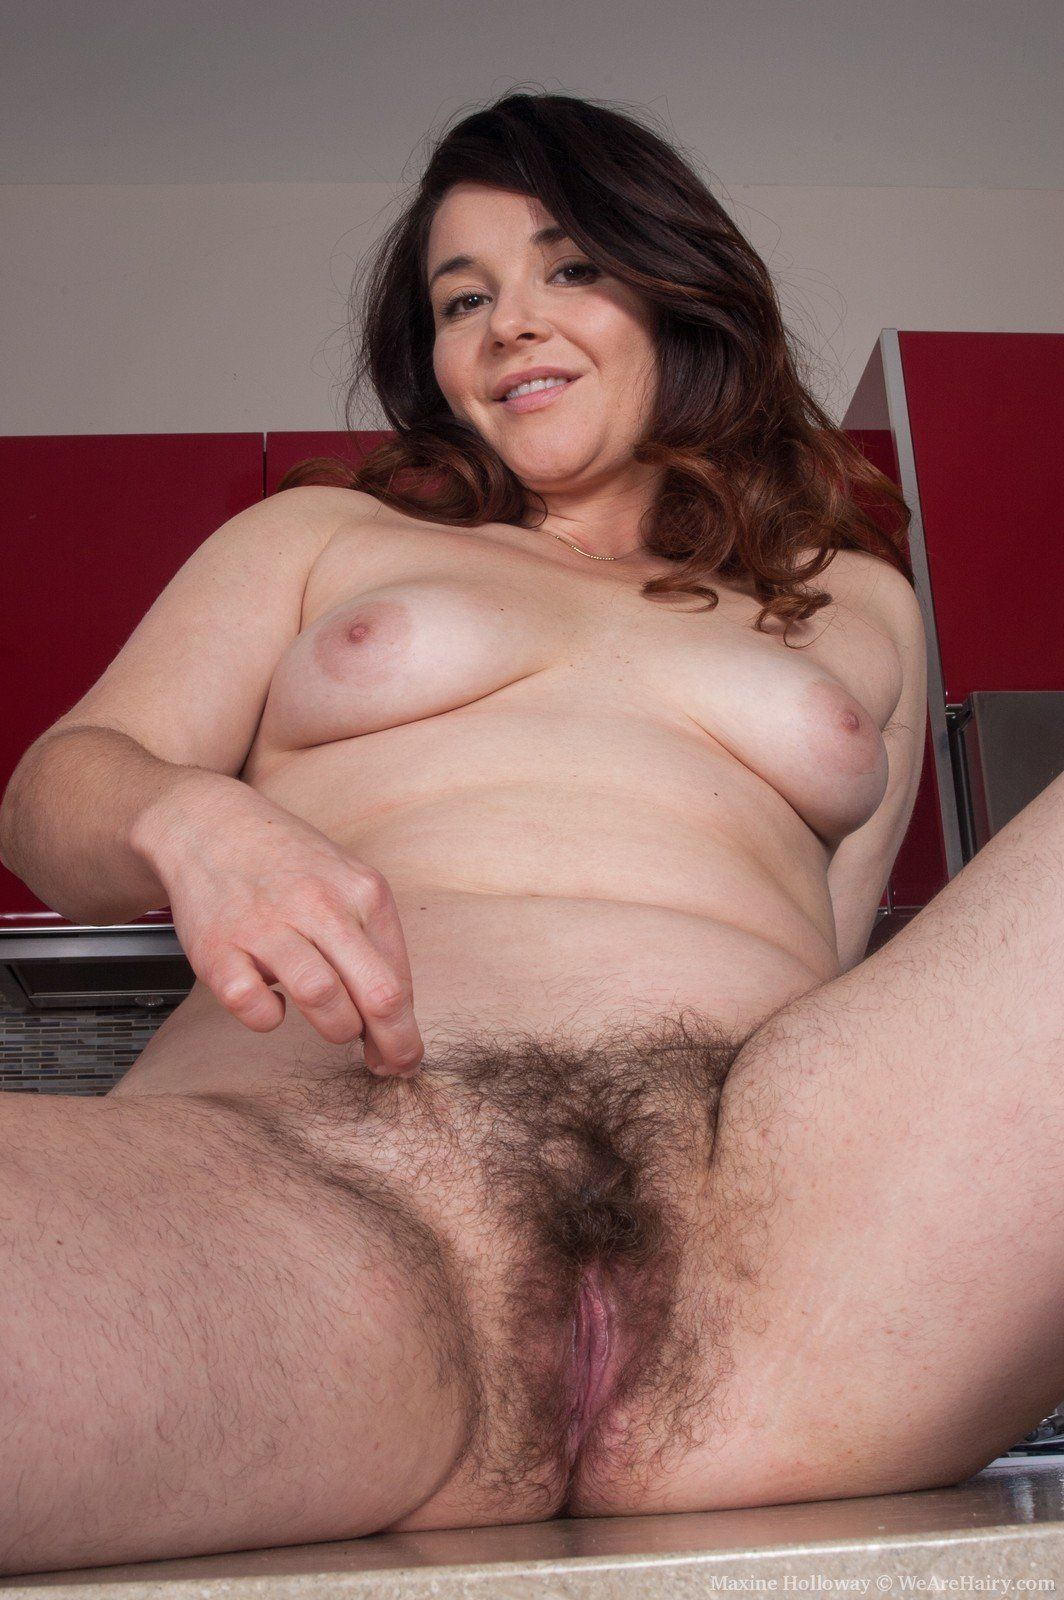 Fat hairy pussy pic photo 2